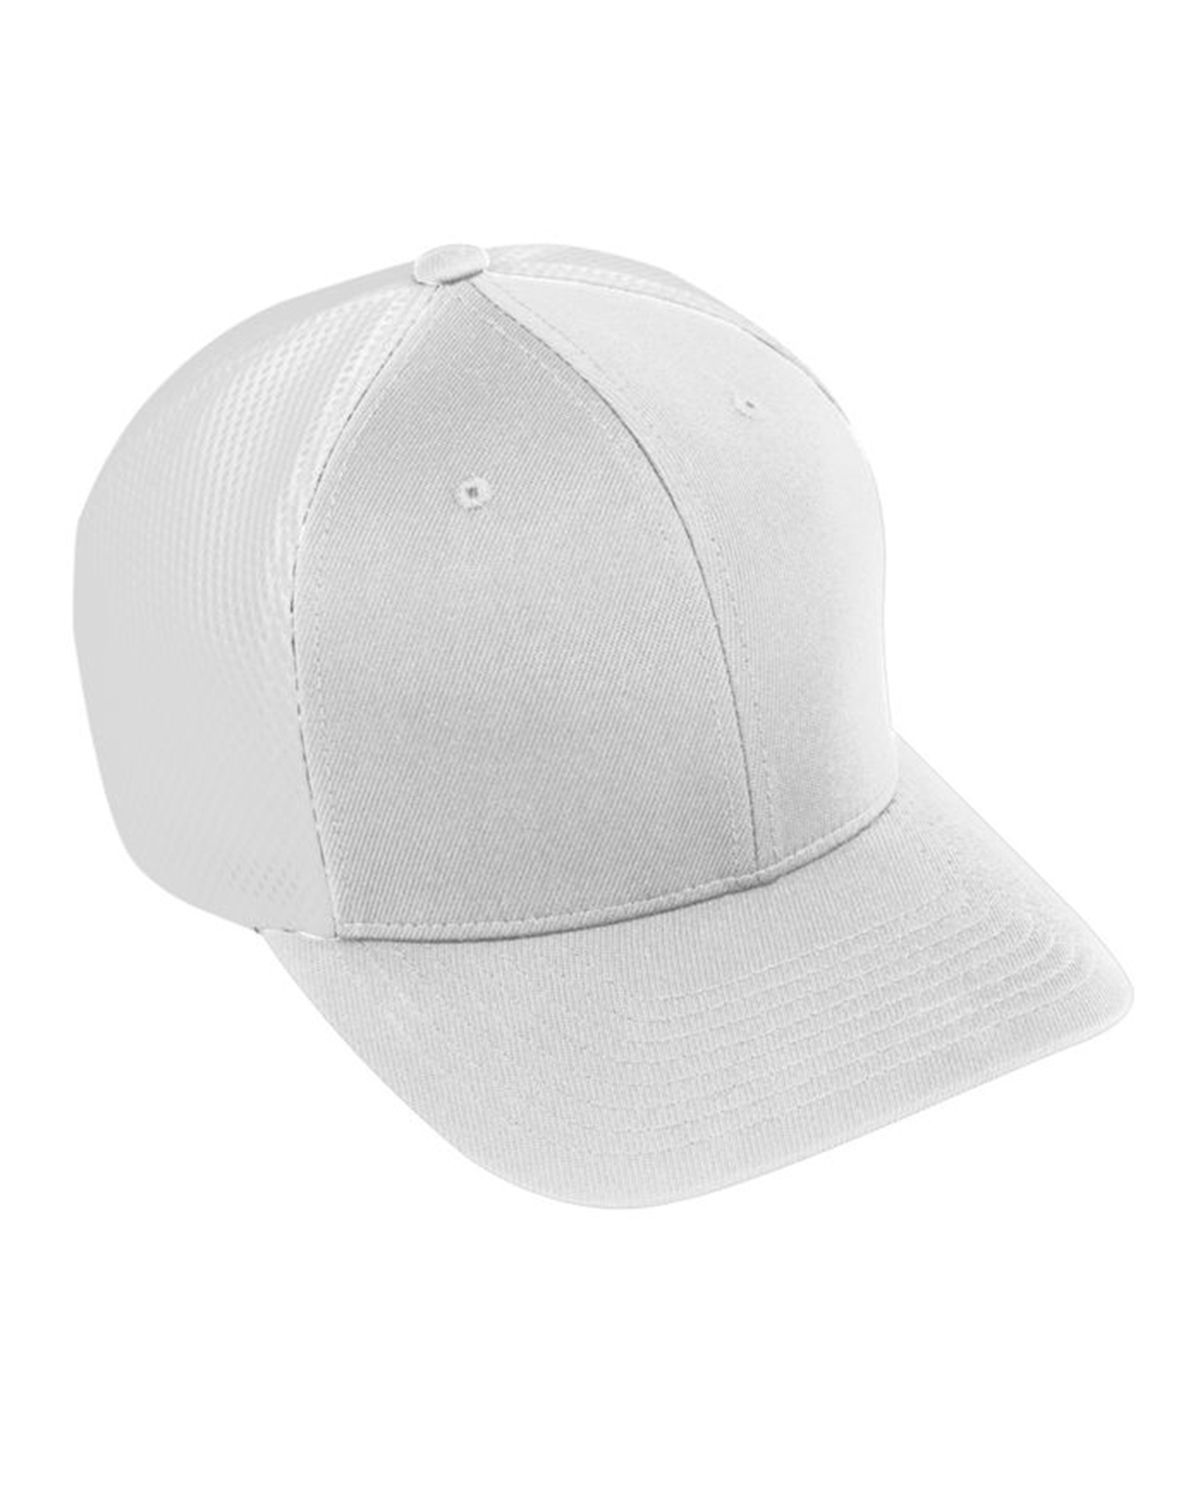 Augusta Sportswear AG6301 Youth Flex Fit Vapor Cap - White/ White - One Size #vapor